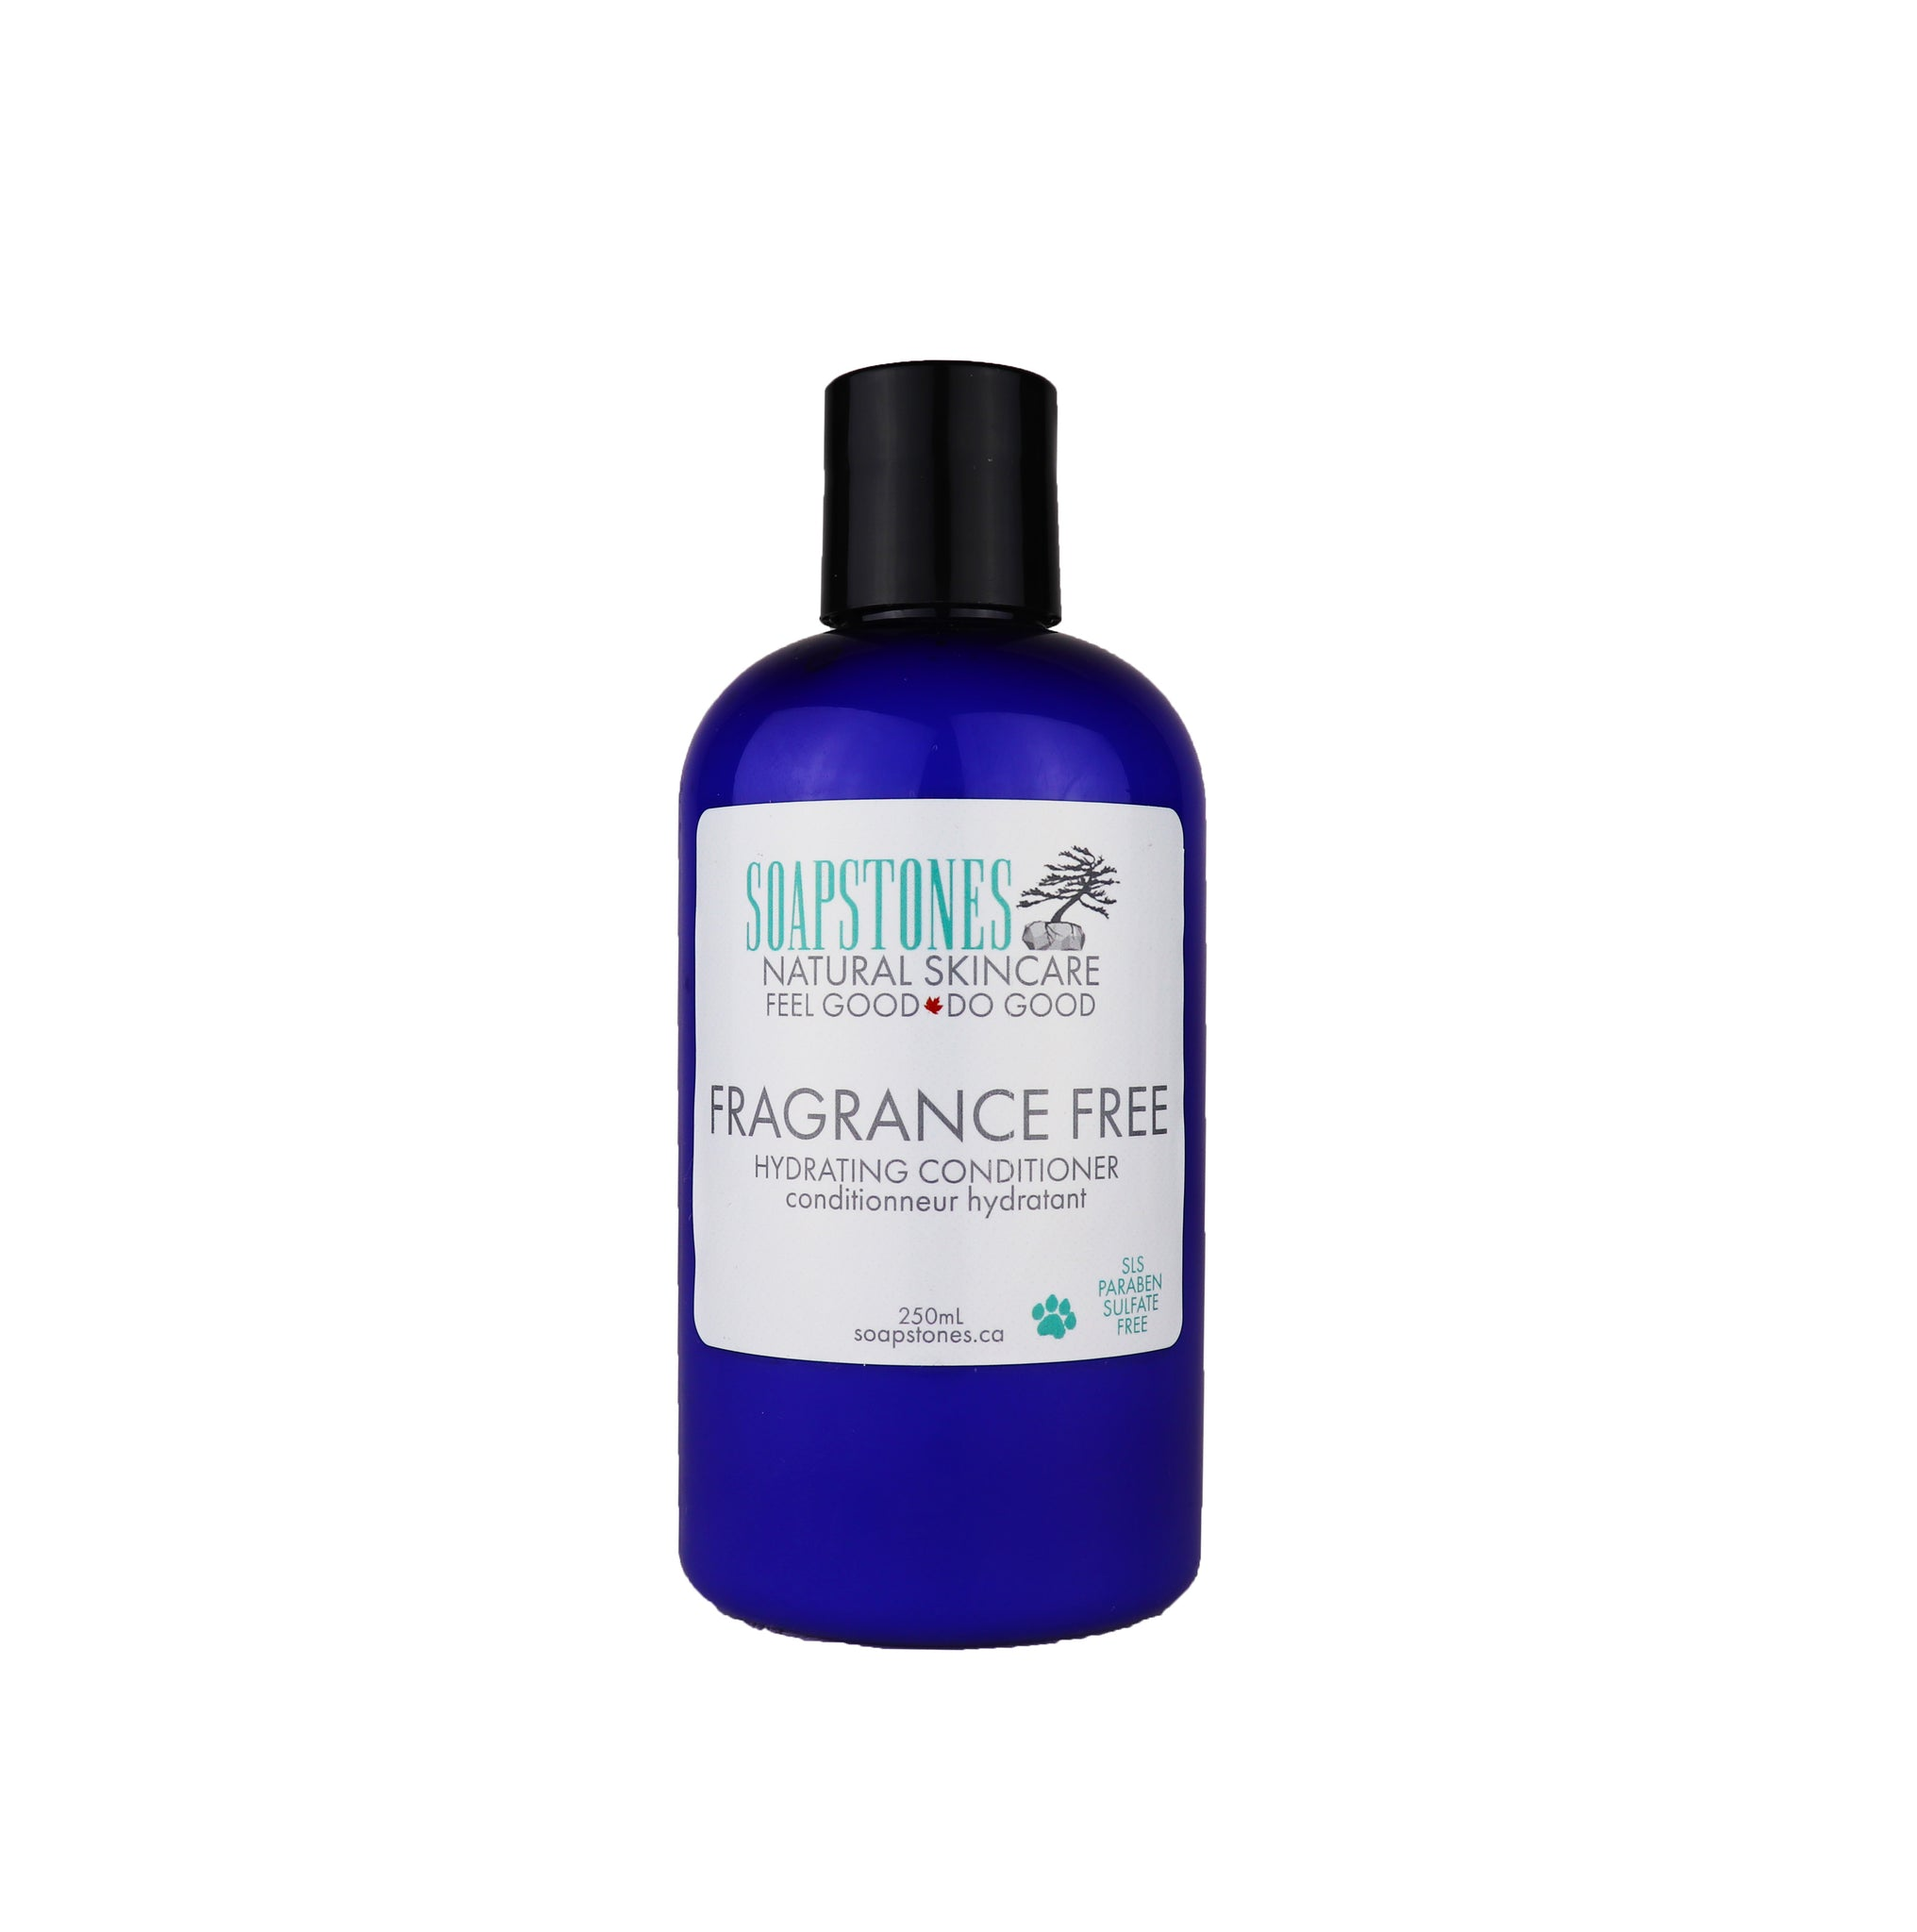 Fragrance Free Hydrating Conditioner - Soapstones Natural Skincare